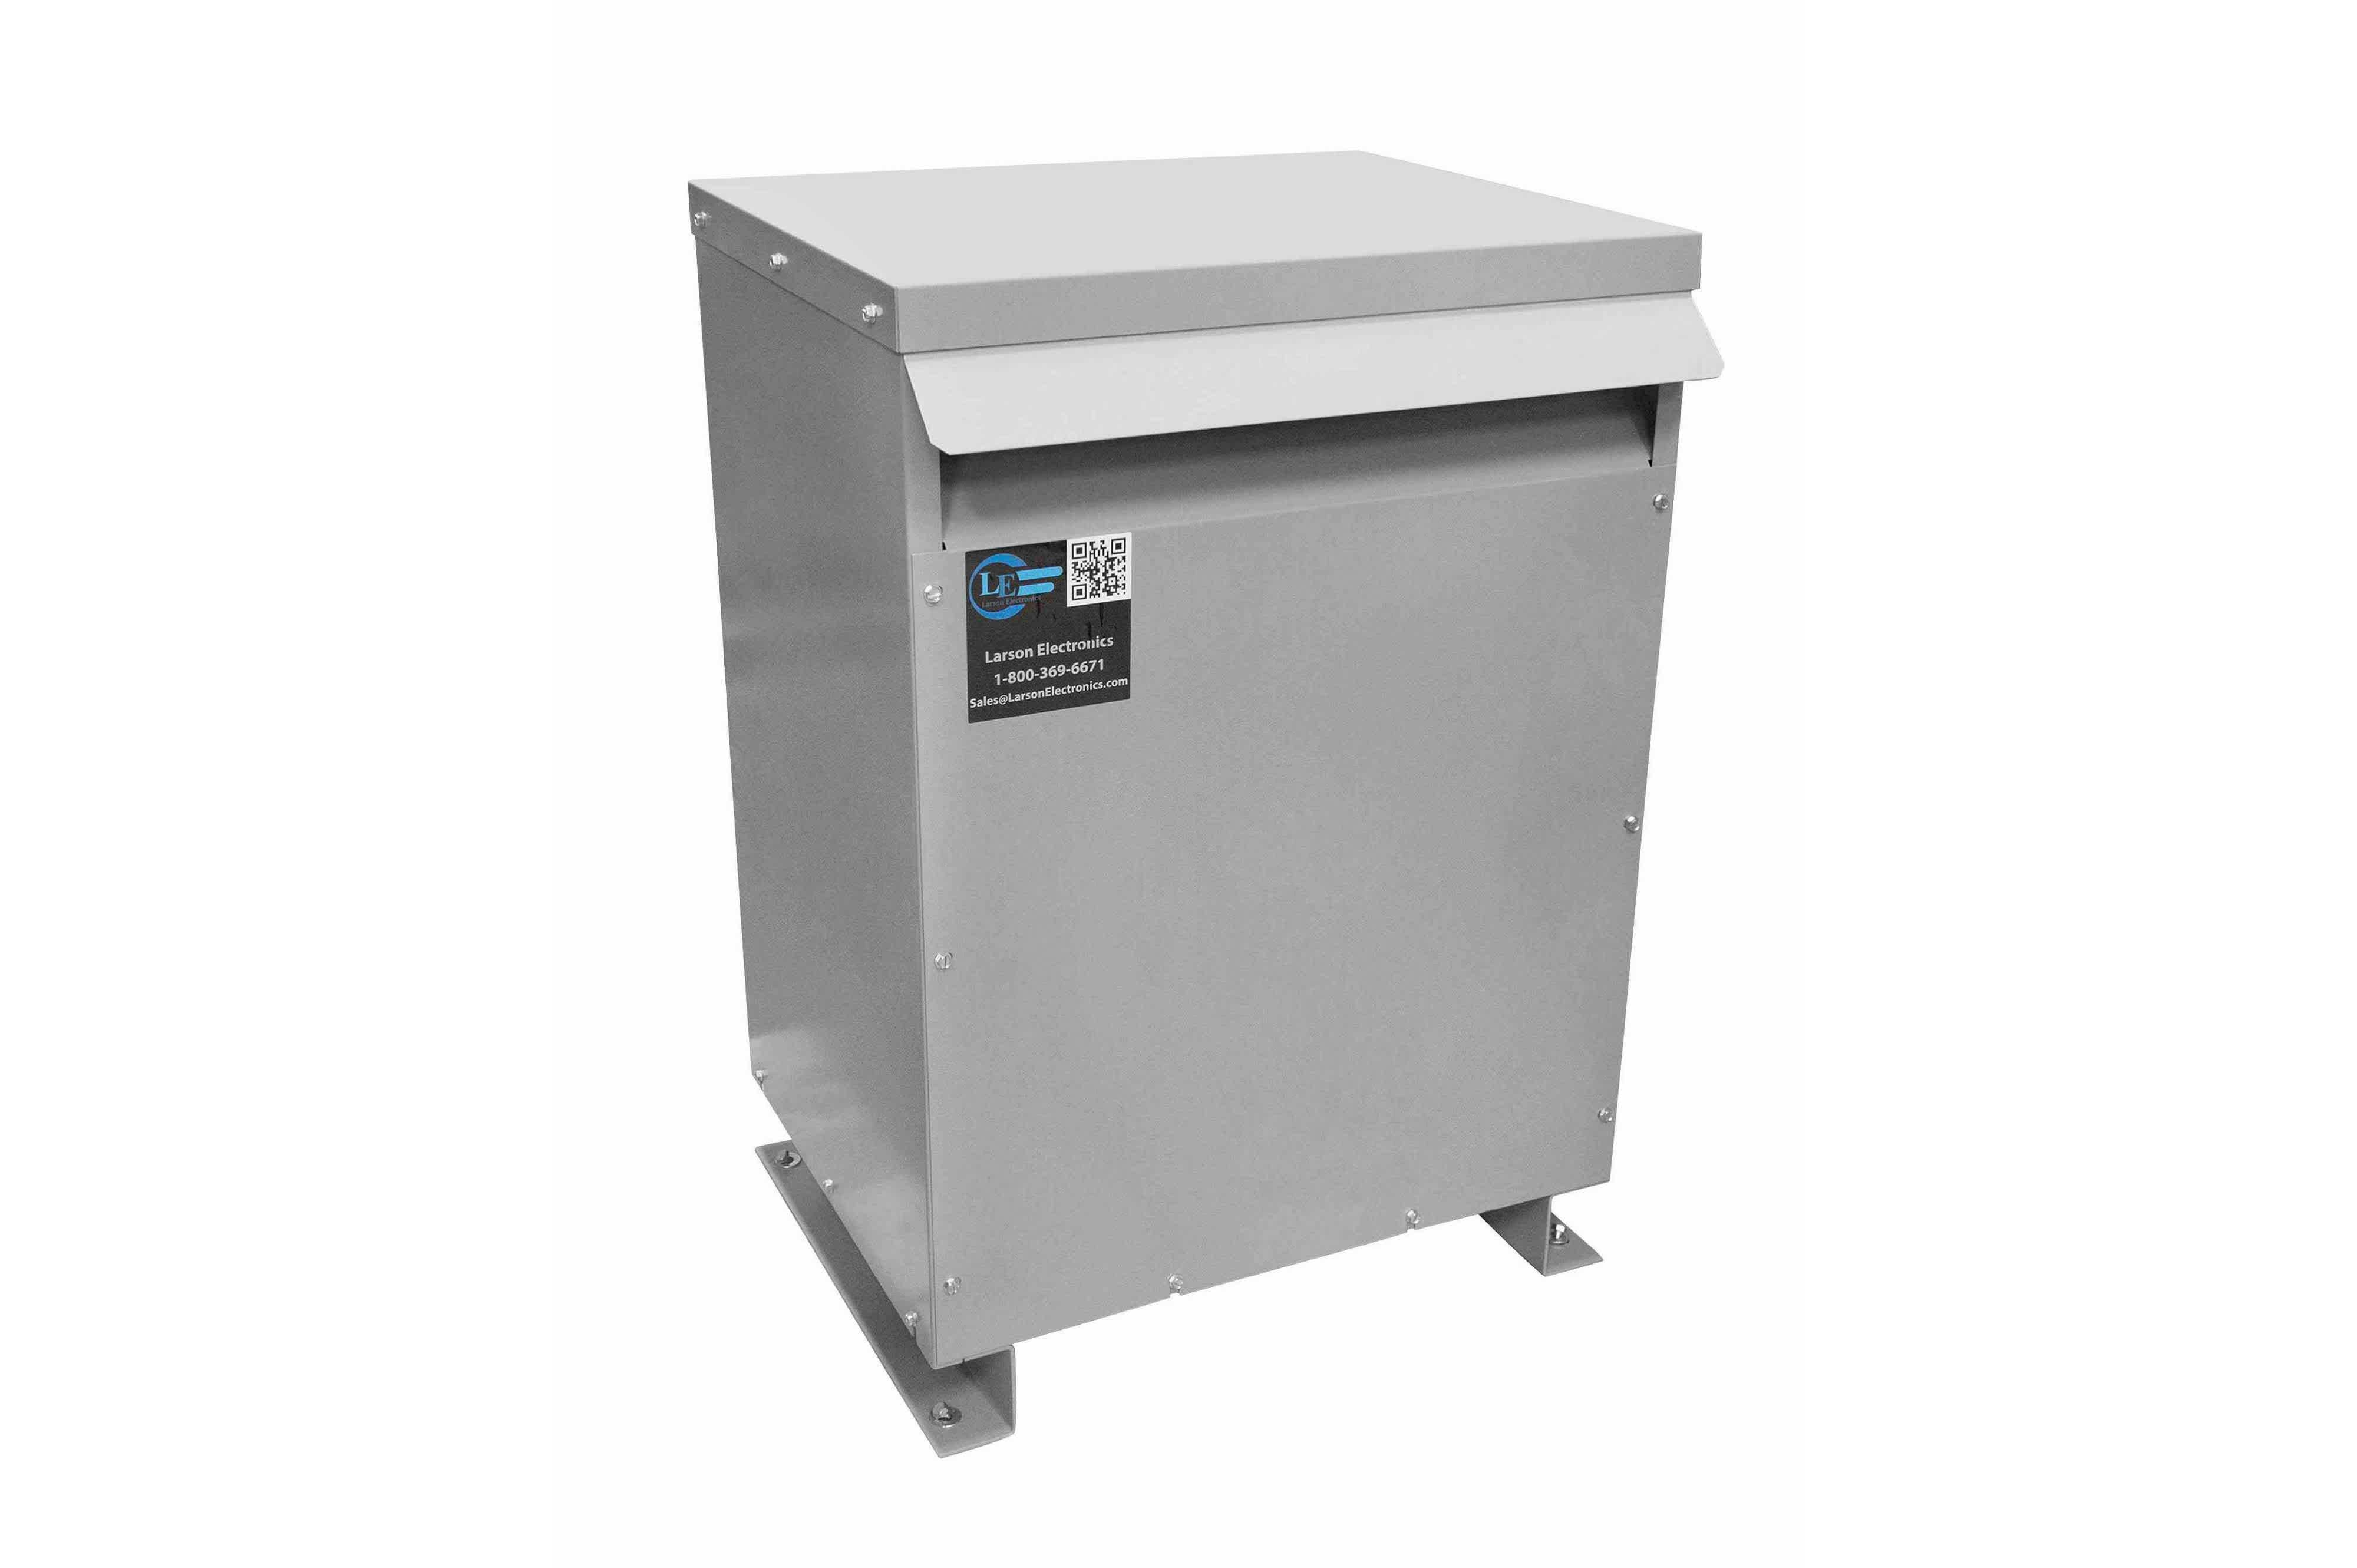 60 kVA 3PH Isolation Transformer, 600V Delta Primary, 208V Delta Secondary, N3R, Ventilated, 60 Hz